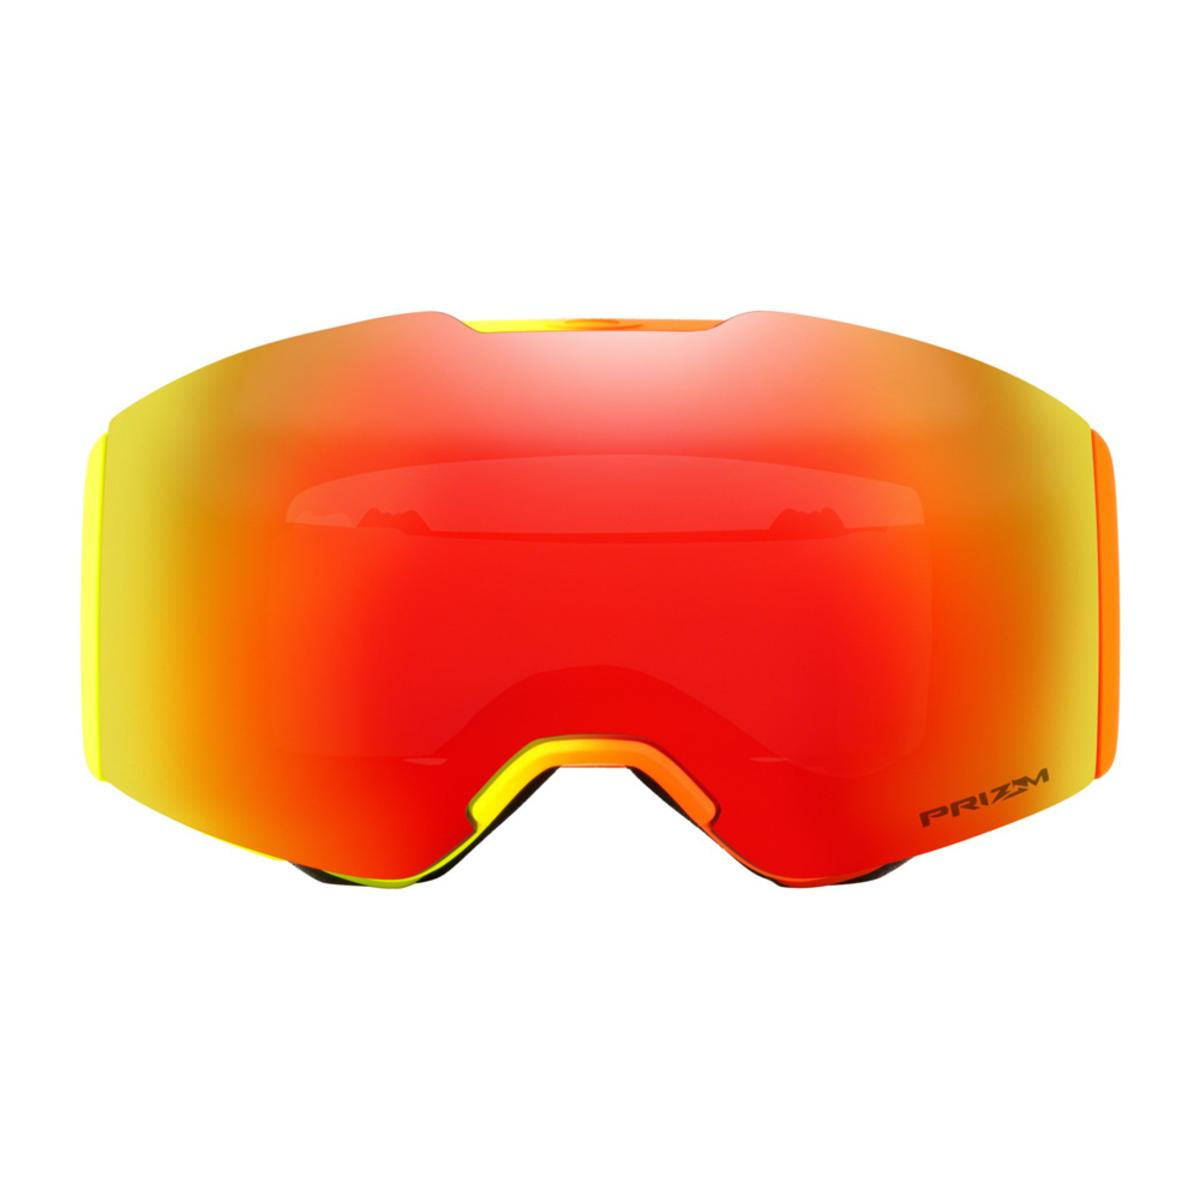 8733afbd05f Oakley Fall Line Harmony Fade Collection Snow Goggle w Prizm Snow Torch  Iridium - The Warming Store